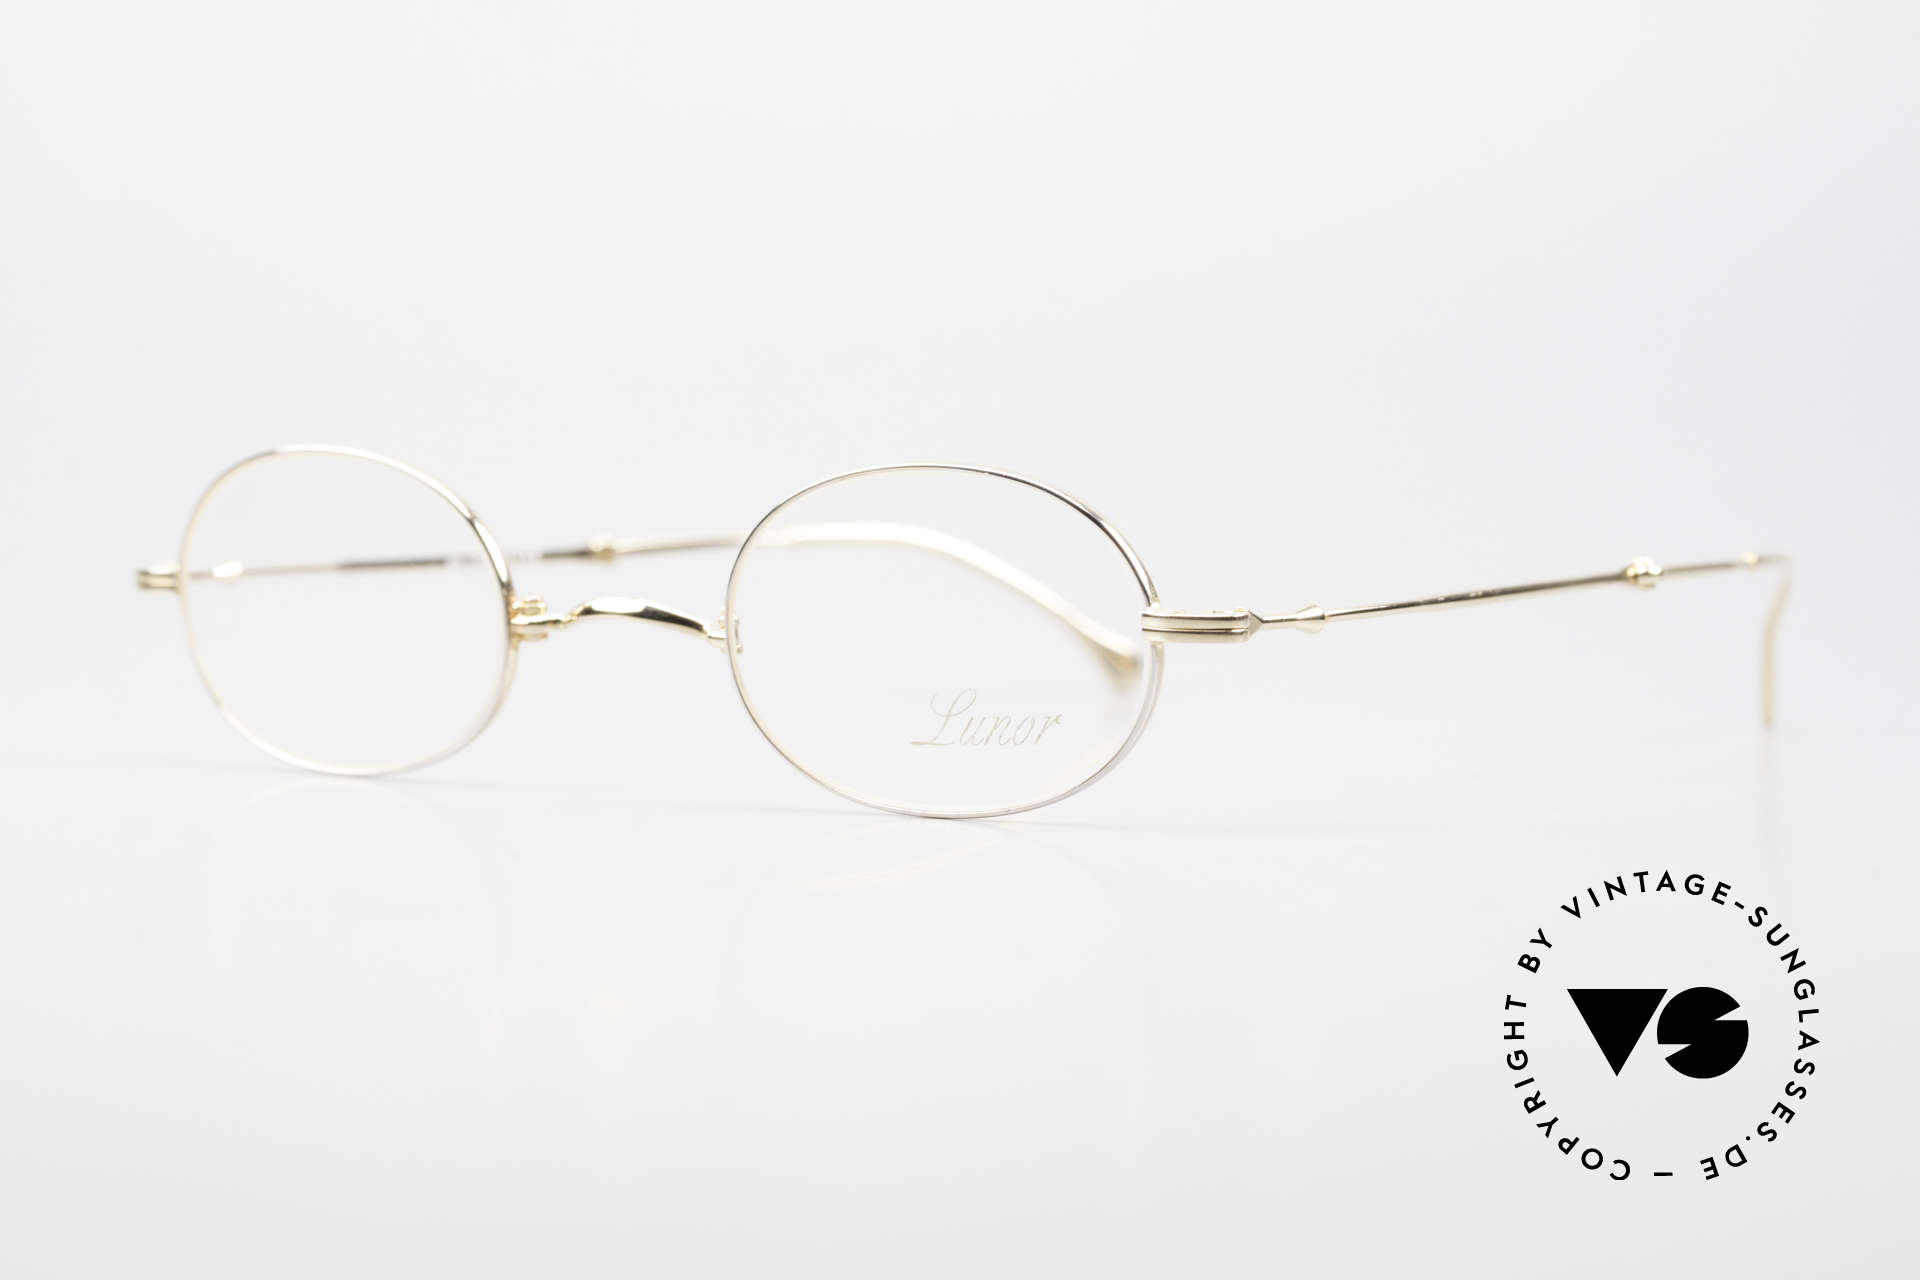 """Lunor XXV Folding 04 Oval Foldable Frame Gold Plated, well-known for the """"W-bridge"""" & the plain frame designs, Made for Men and Women"""